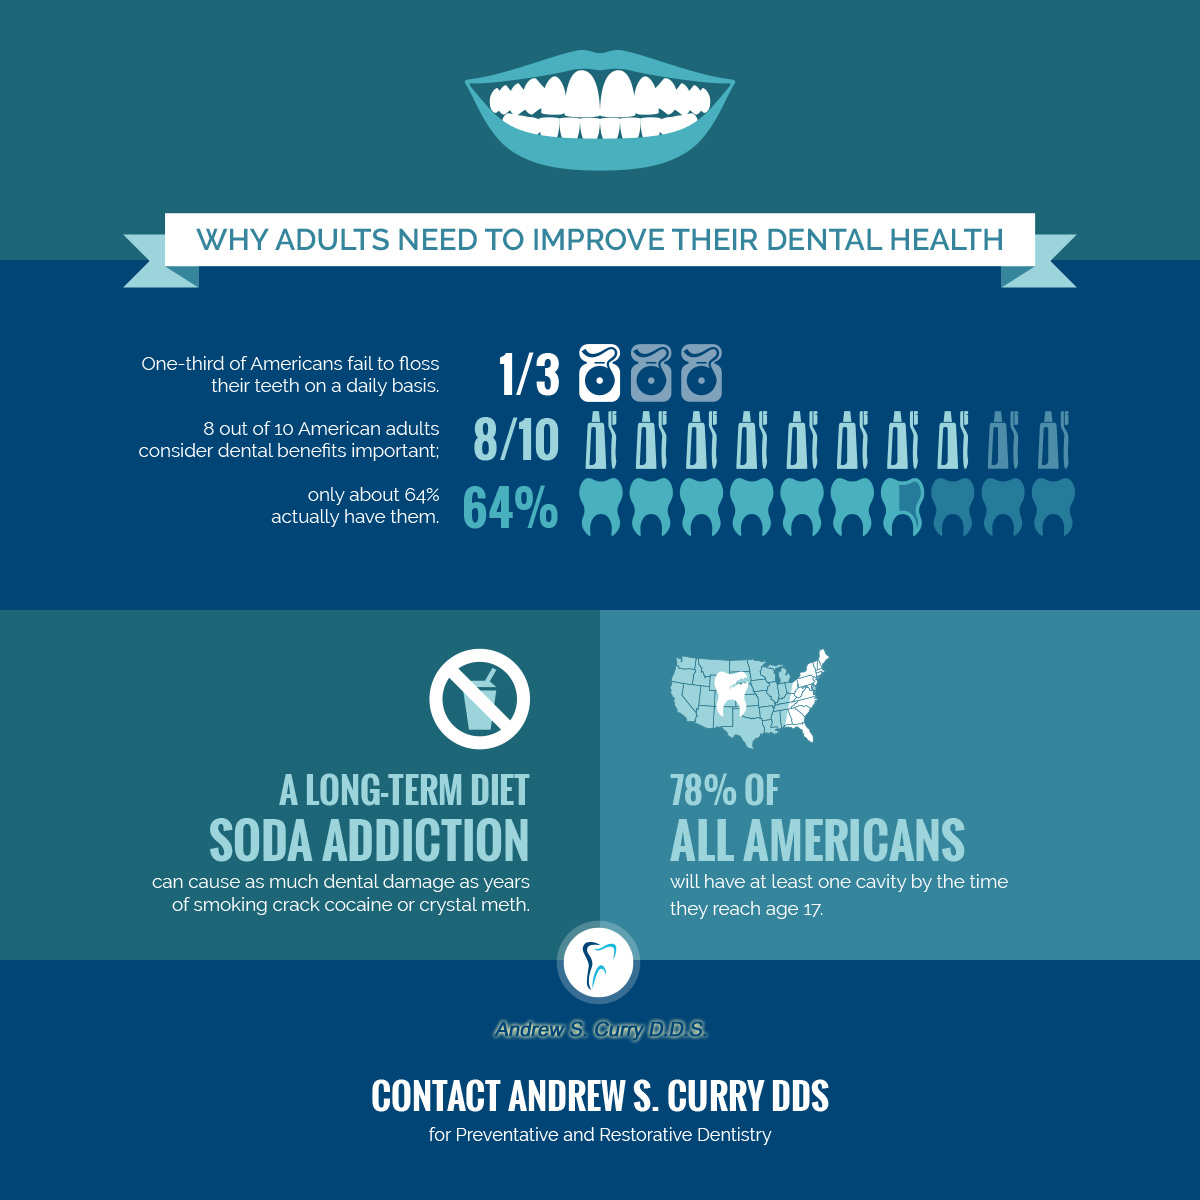 Why-Adults-Need-to-Improve-Their-Dental-Health-Infographic